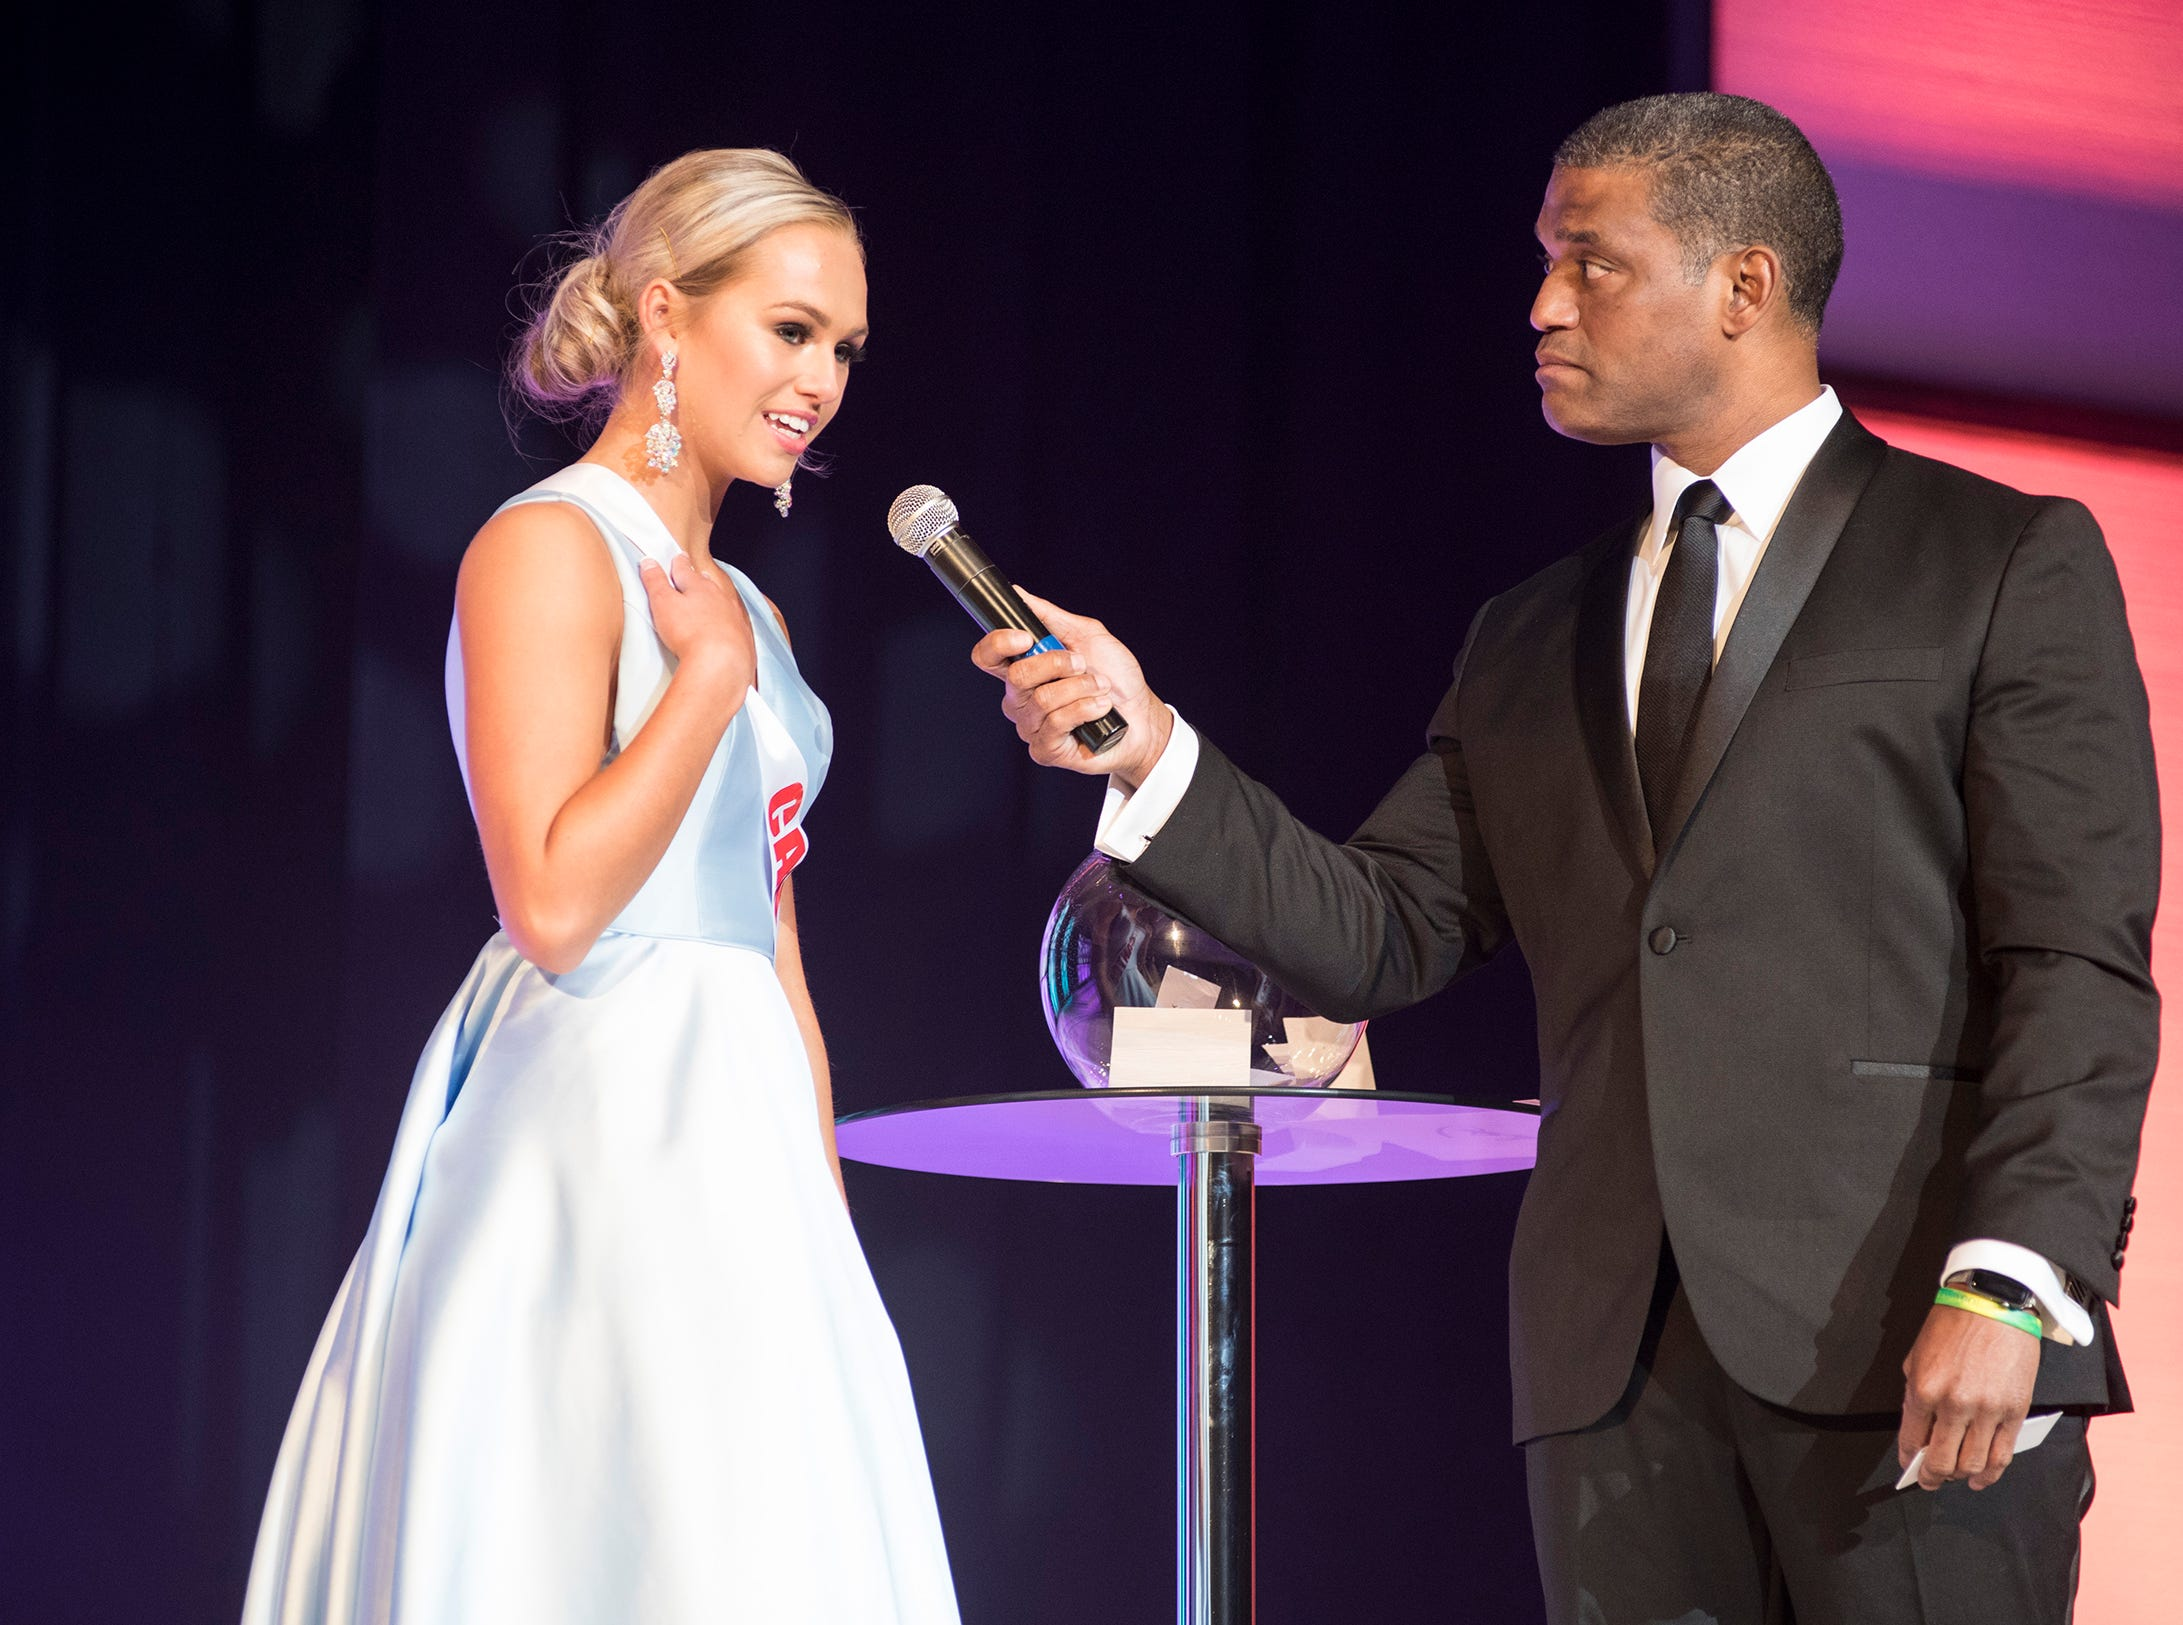 Miss Canton Teen Alexis Lubecki, left, is questioned by Cincinnati TV personality Rob Williams Saturday, Sept. 22, 2018 during the final round of the Miss Michigan Teen USA pageant at McMorran Theater.